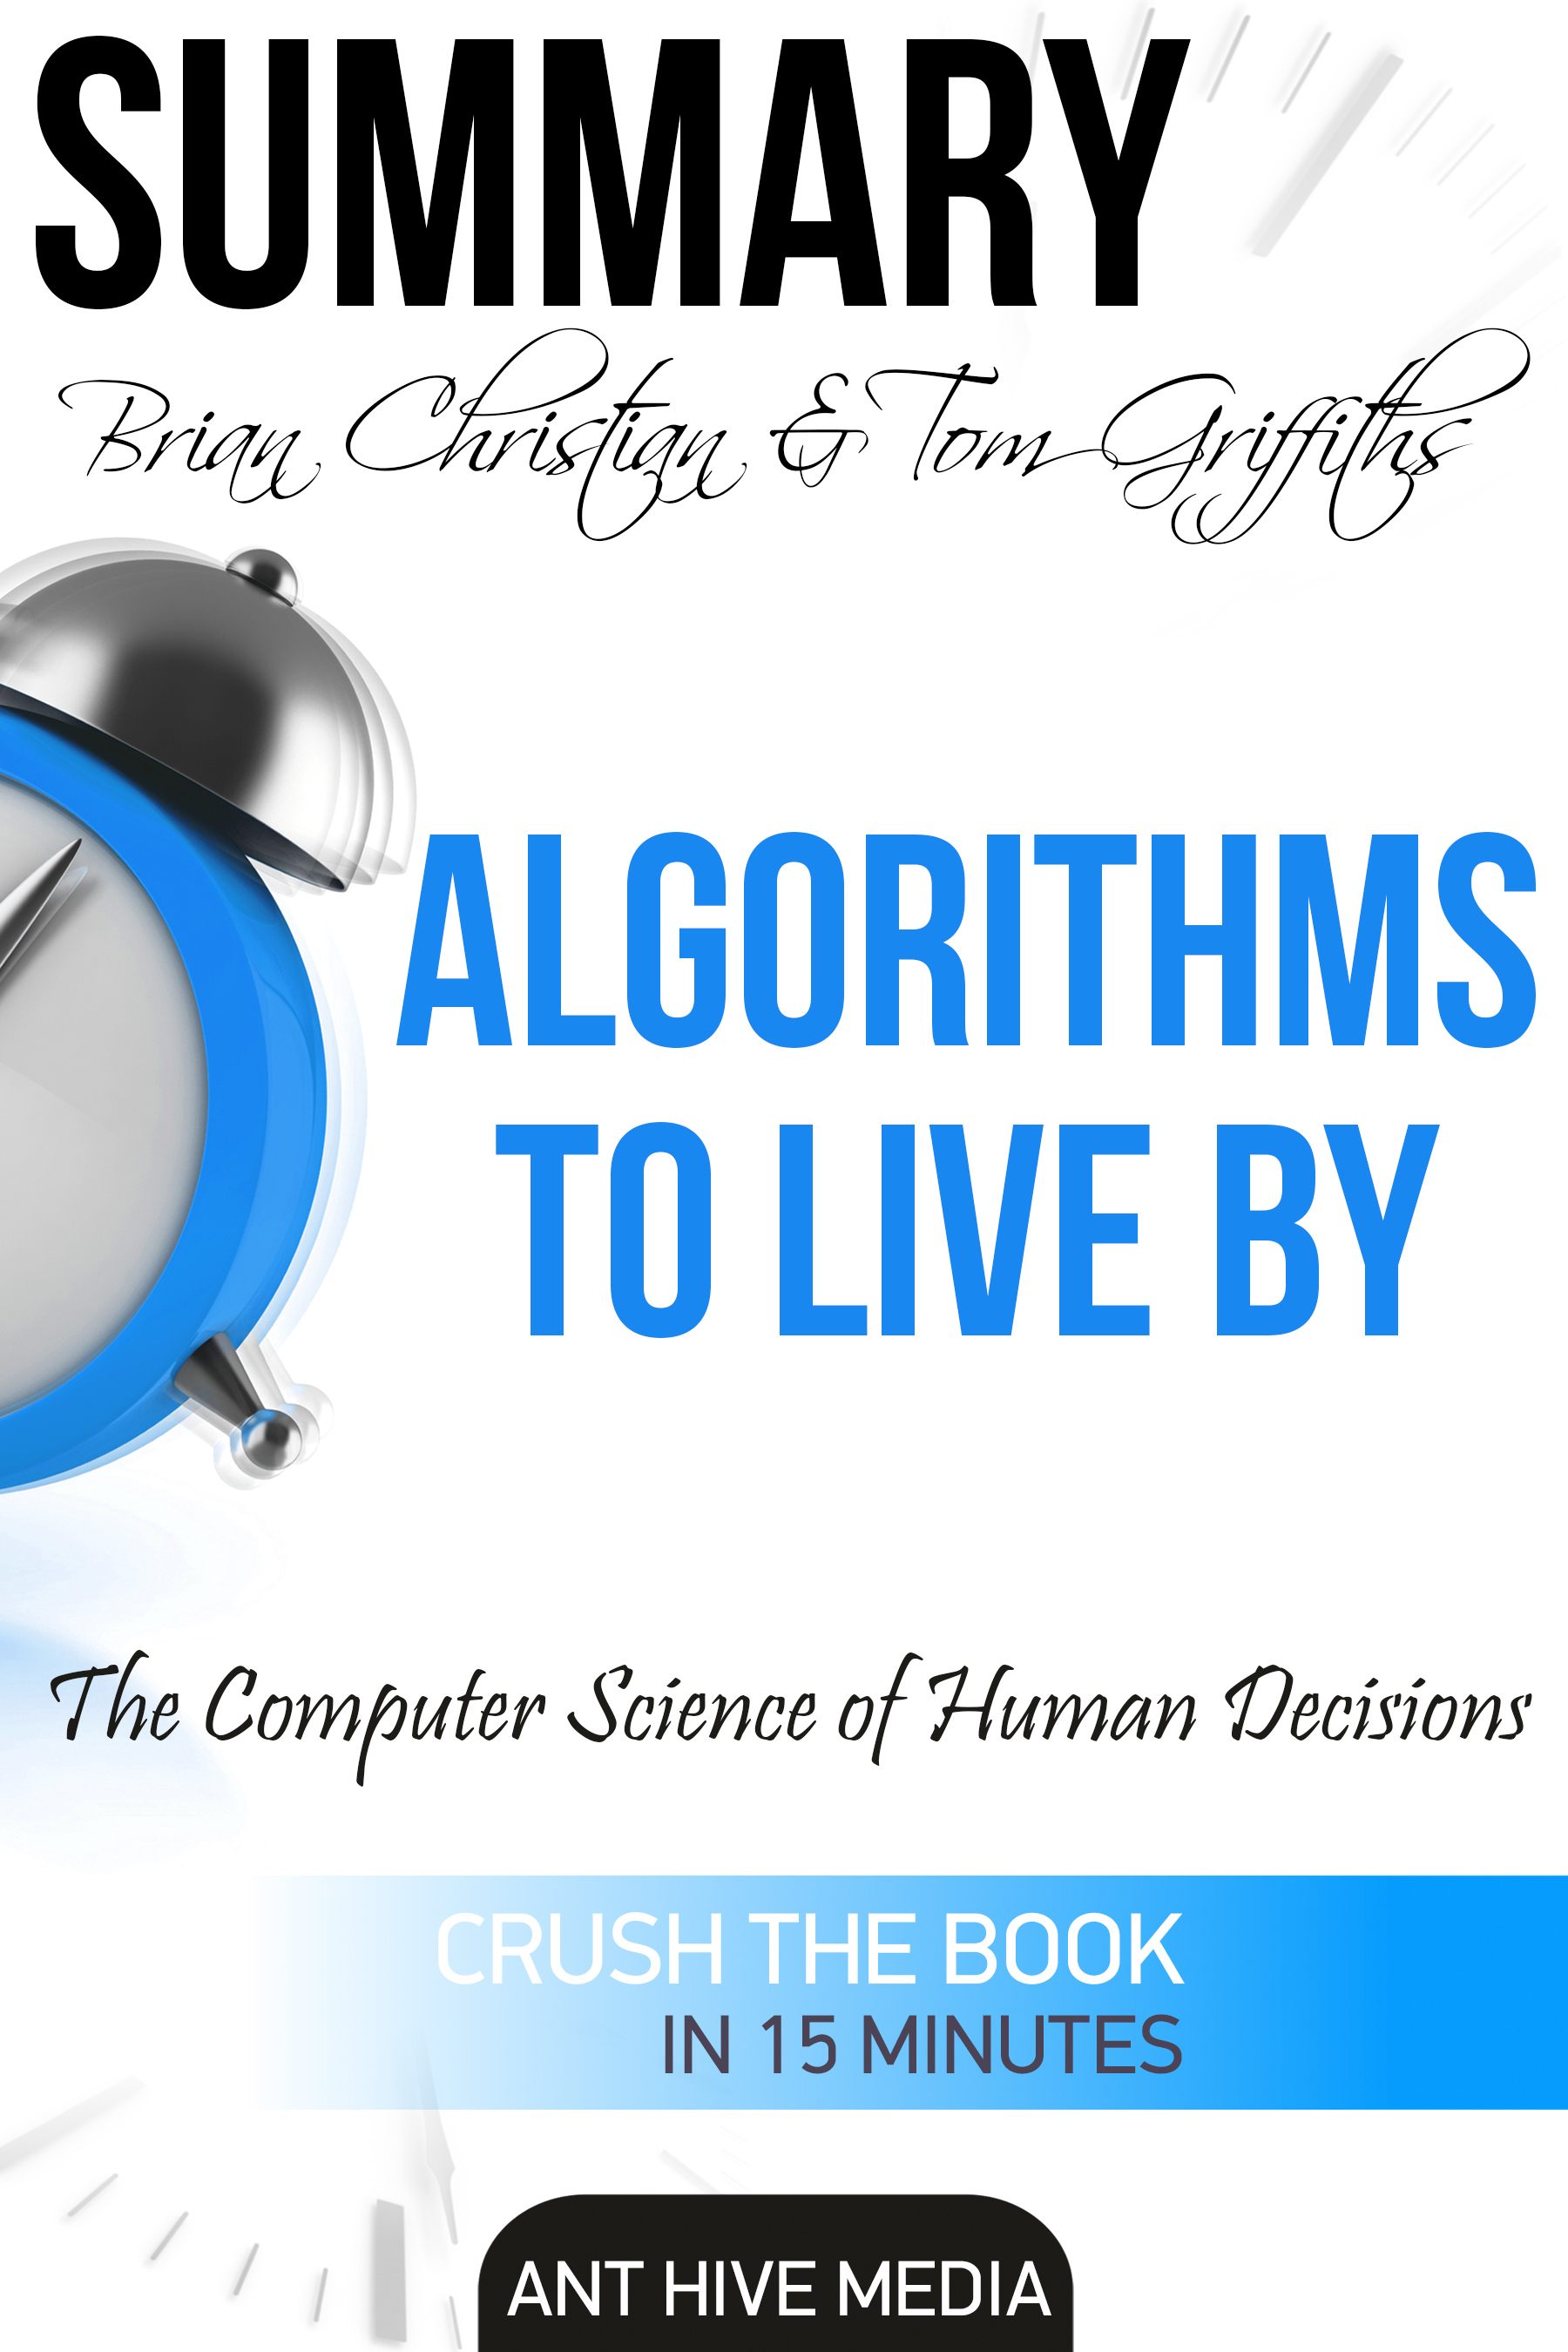 Brian Christian & Tom Griffiths' Algorithms to Live By: The Computer Science of Human Decisions | Summary